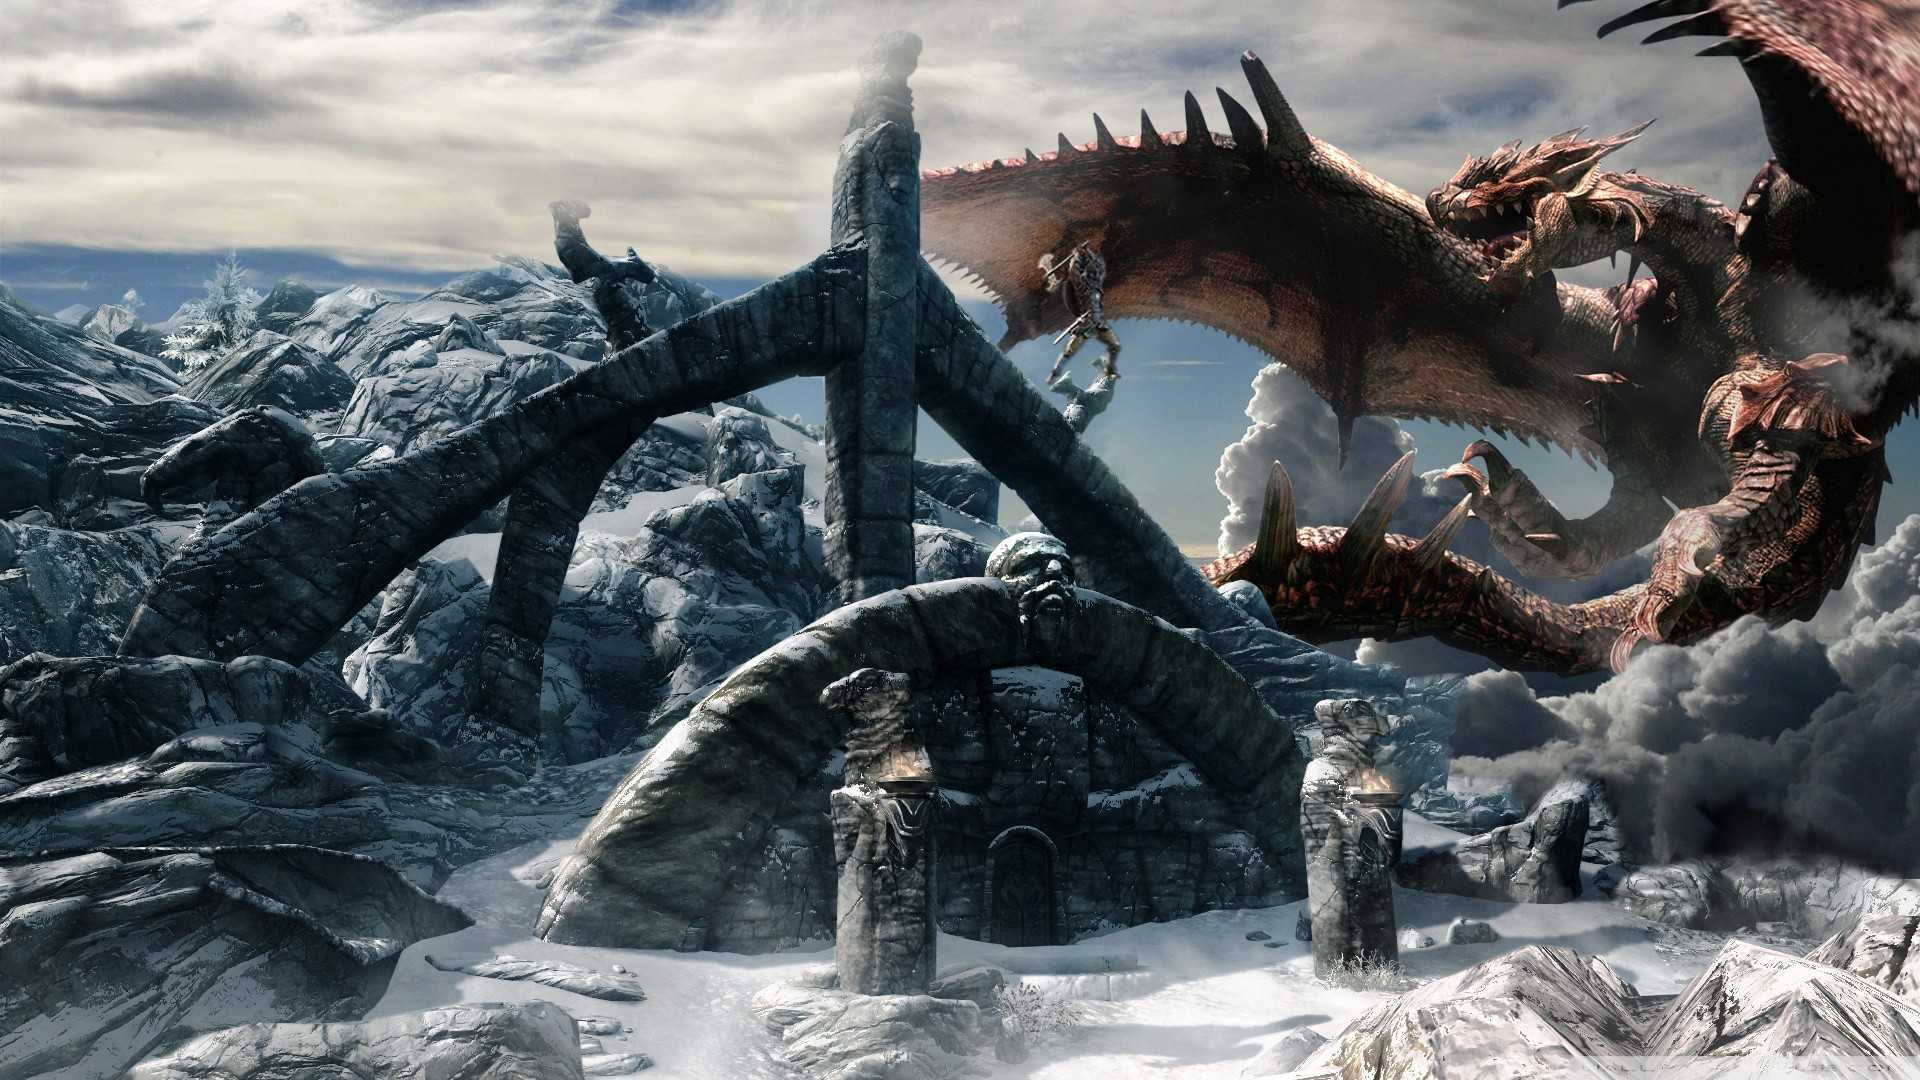 Skyrim dragon wallpaper wallpapertag - Dragon backgrounds 1920x1080 ...